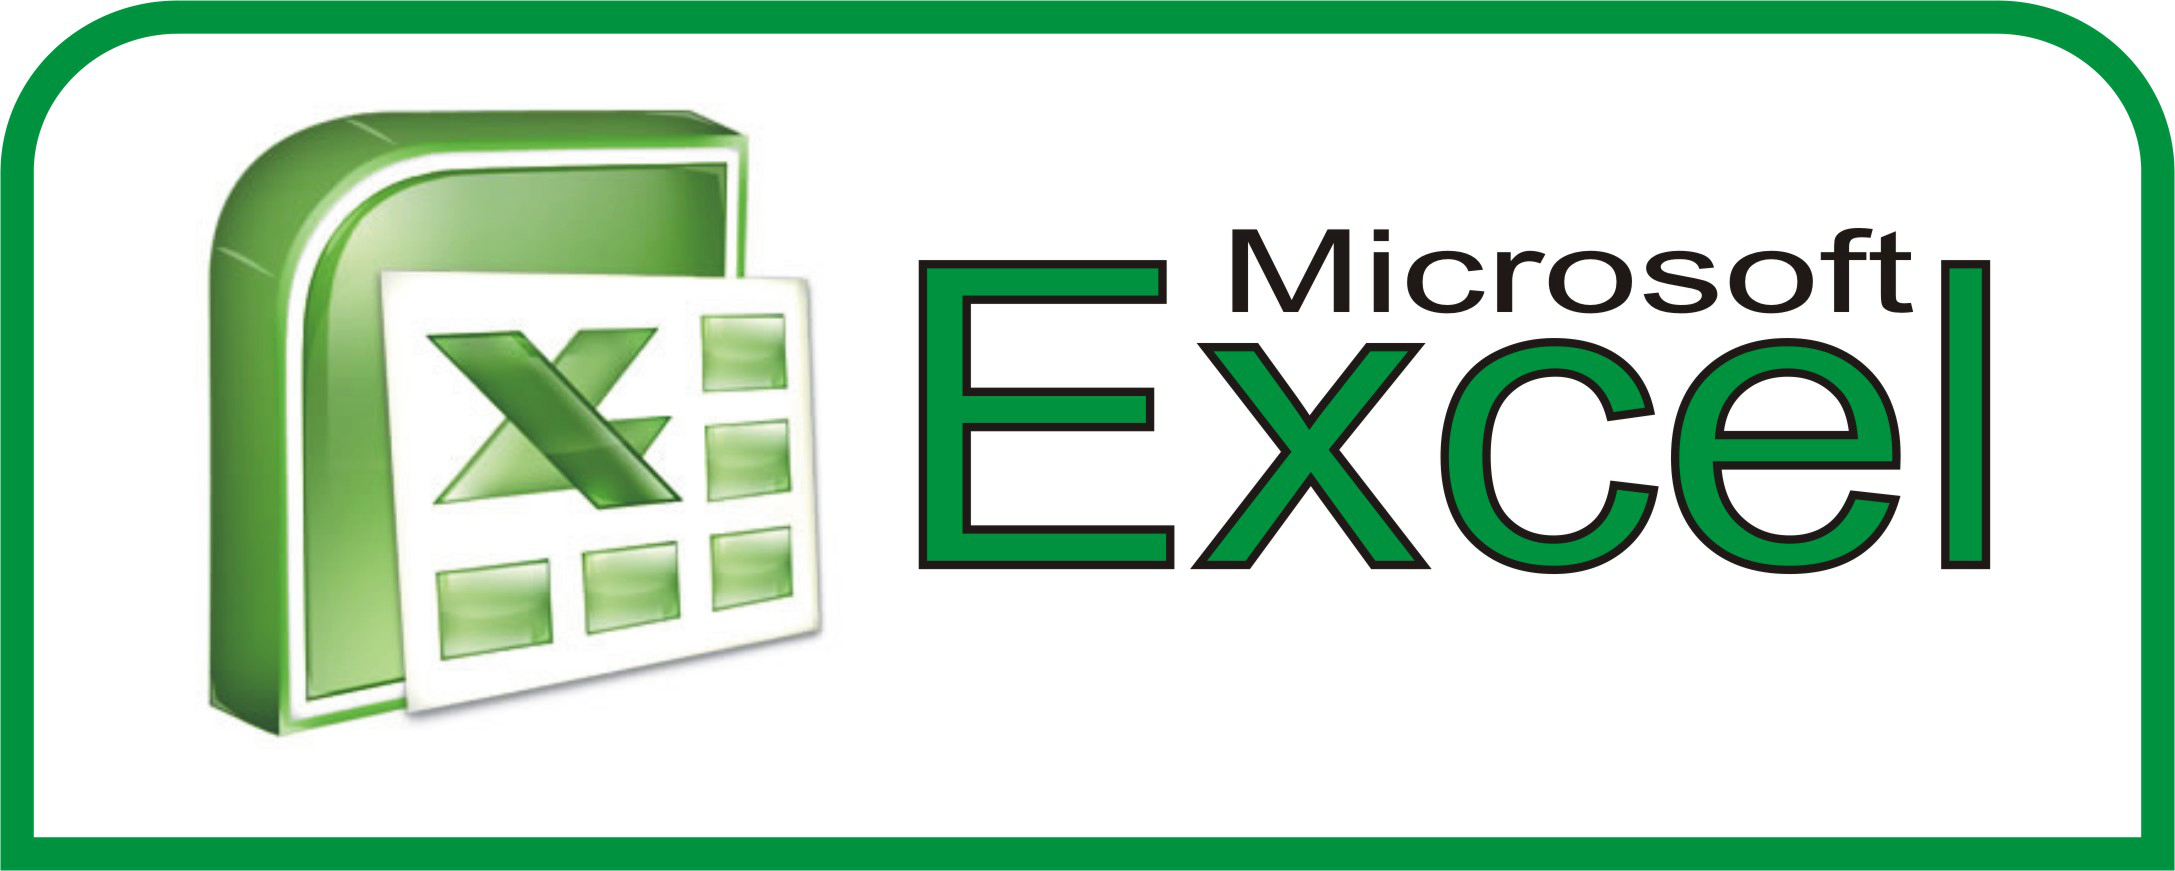 Ediblewildsus  Outstanding  Excel Shortcuts You Probably Didnt Know About  Techdissected With Exciting Link Excel Workbooks Besides Open Excel File Using Vba Furthermore Excel Training Sacramento With Astonishing Len Function In Excel Also Unique Data In Excel In Addition Trial Version Excel And Excel Physical Therapy Bozeman As Well As Number Convert To Word In Excel  Additionally Drop Down Menu In Excel  From Techdissectedcom With Ediblewildsus  Exciting  Excel Shortcuts You Probably Didnt Know About  Techdissected With Astonishing Link Excel Workbooks Besides Open Excel File Using Vba Furthermore Excel Training Sacramento And Outstanding Len Function In Excel Also Unique Data In Excel In Addition Trial Version Excel From Techdissectedcom